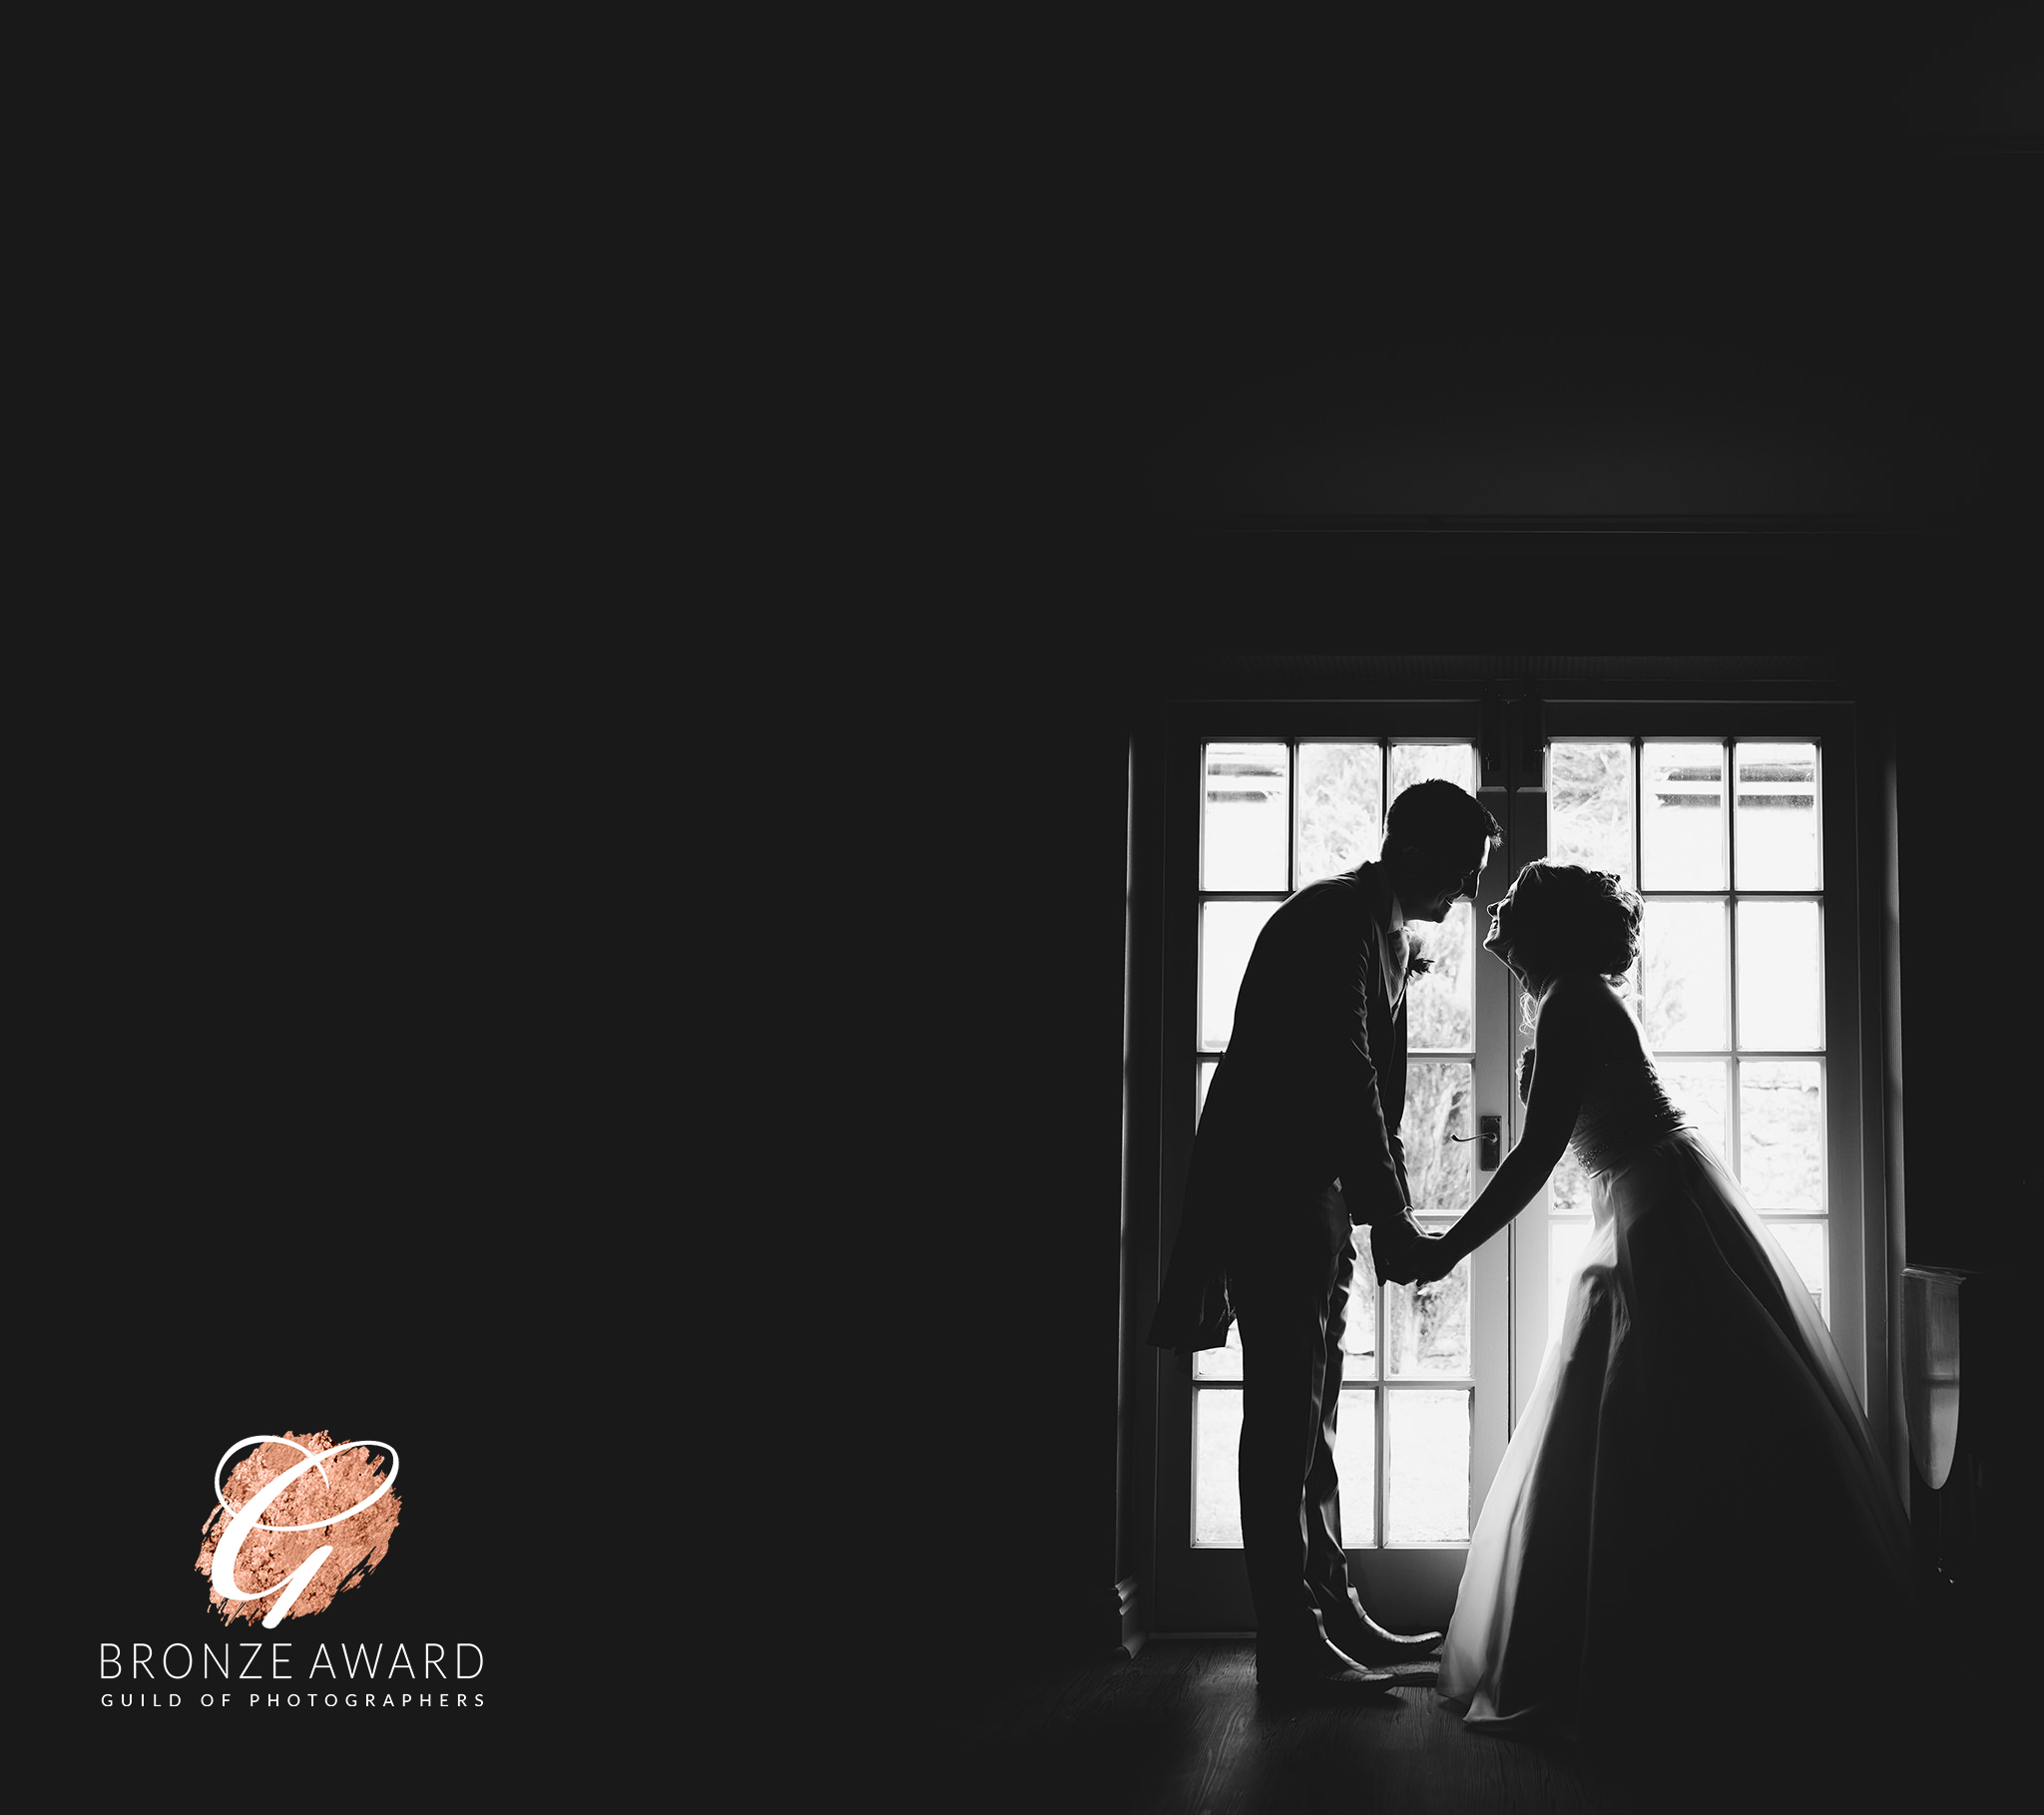 Silhouette in black and white of bride and groom in window at a wedding at The Spread Eagle Thame, Oxfordshire